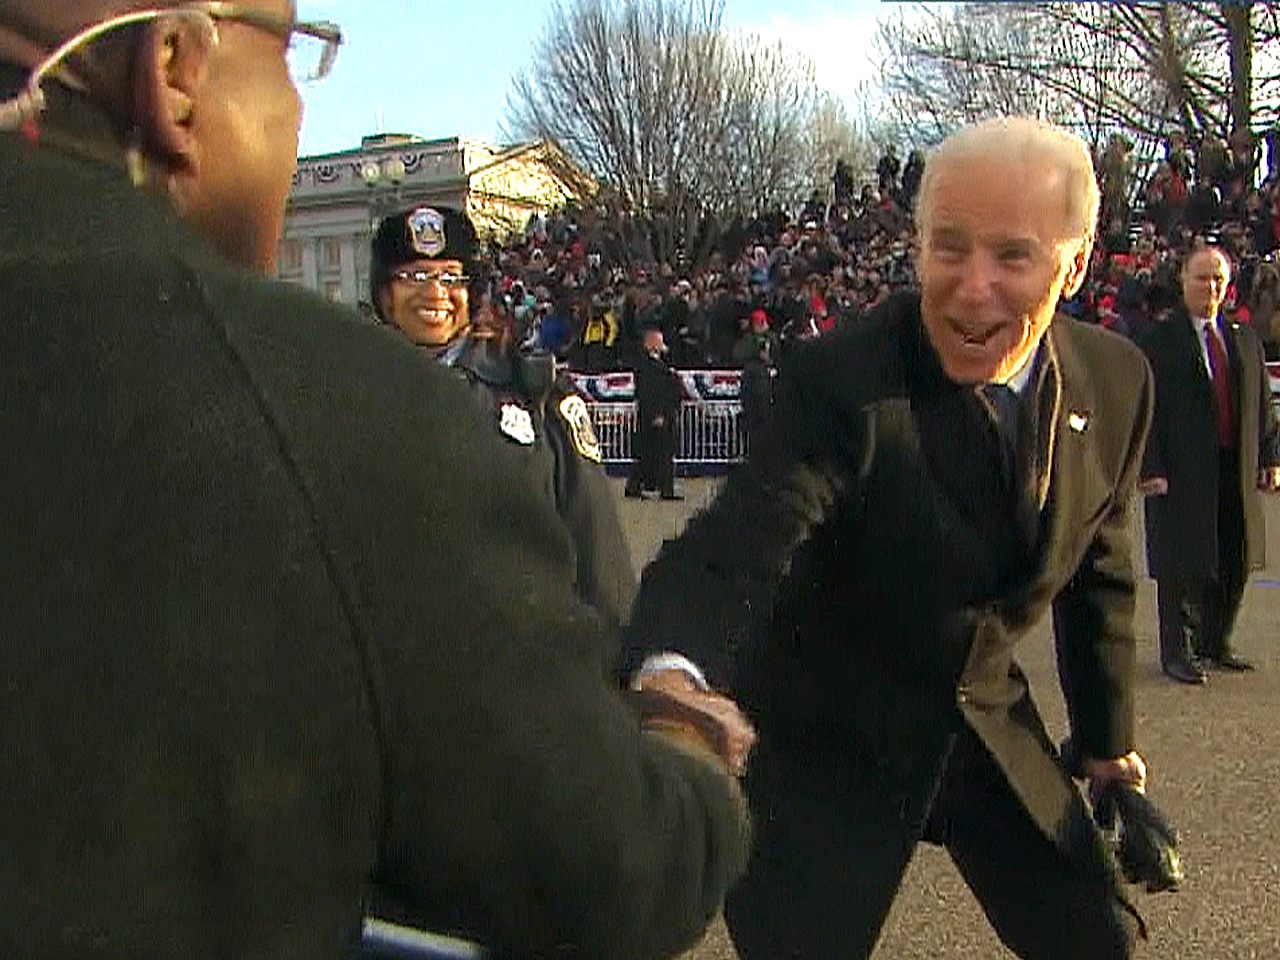 7 best Joe Biden faces during inauguration